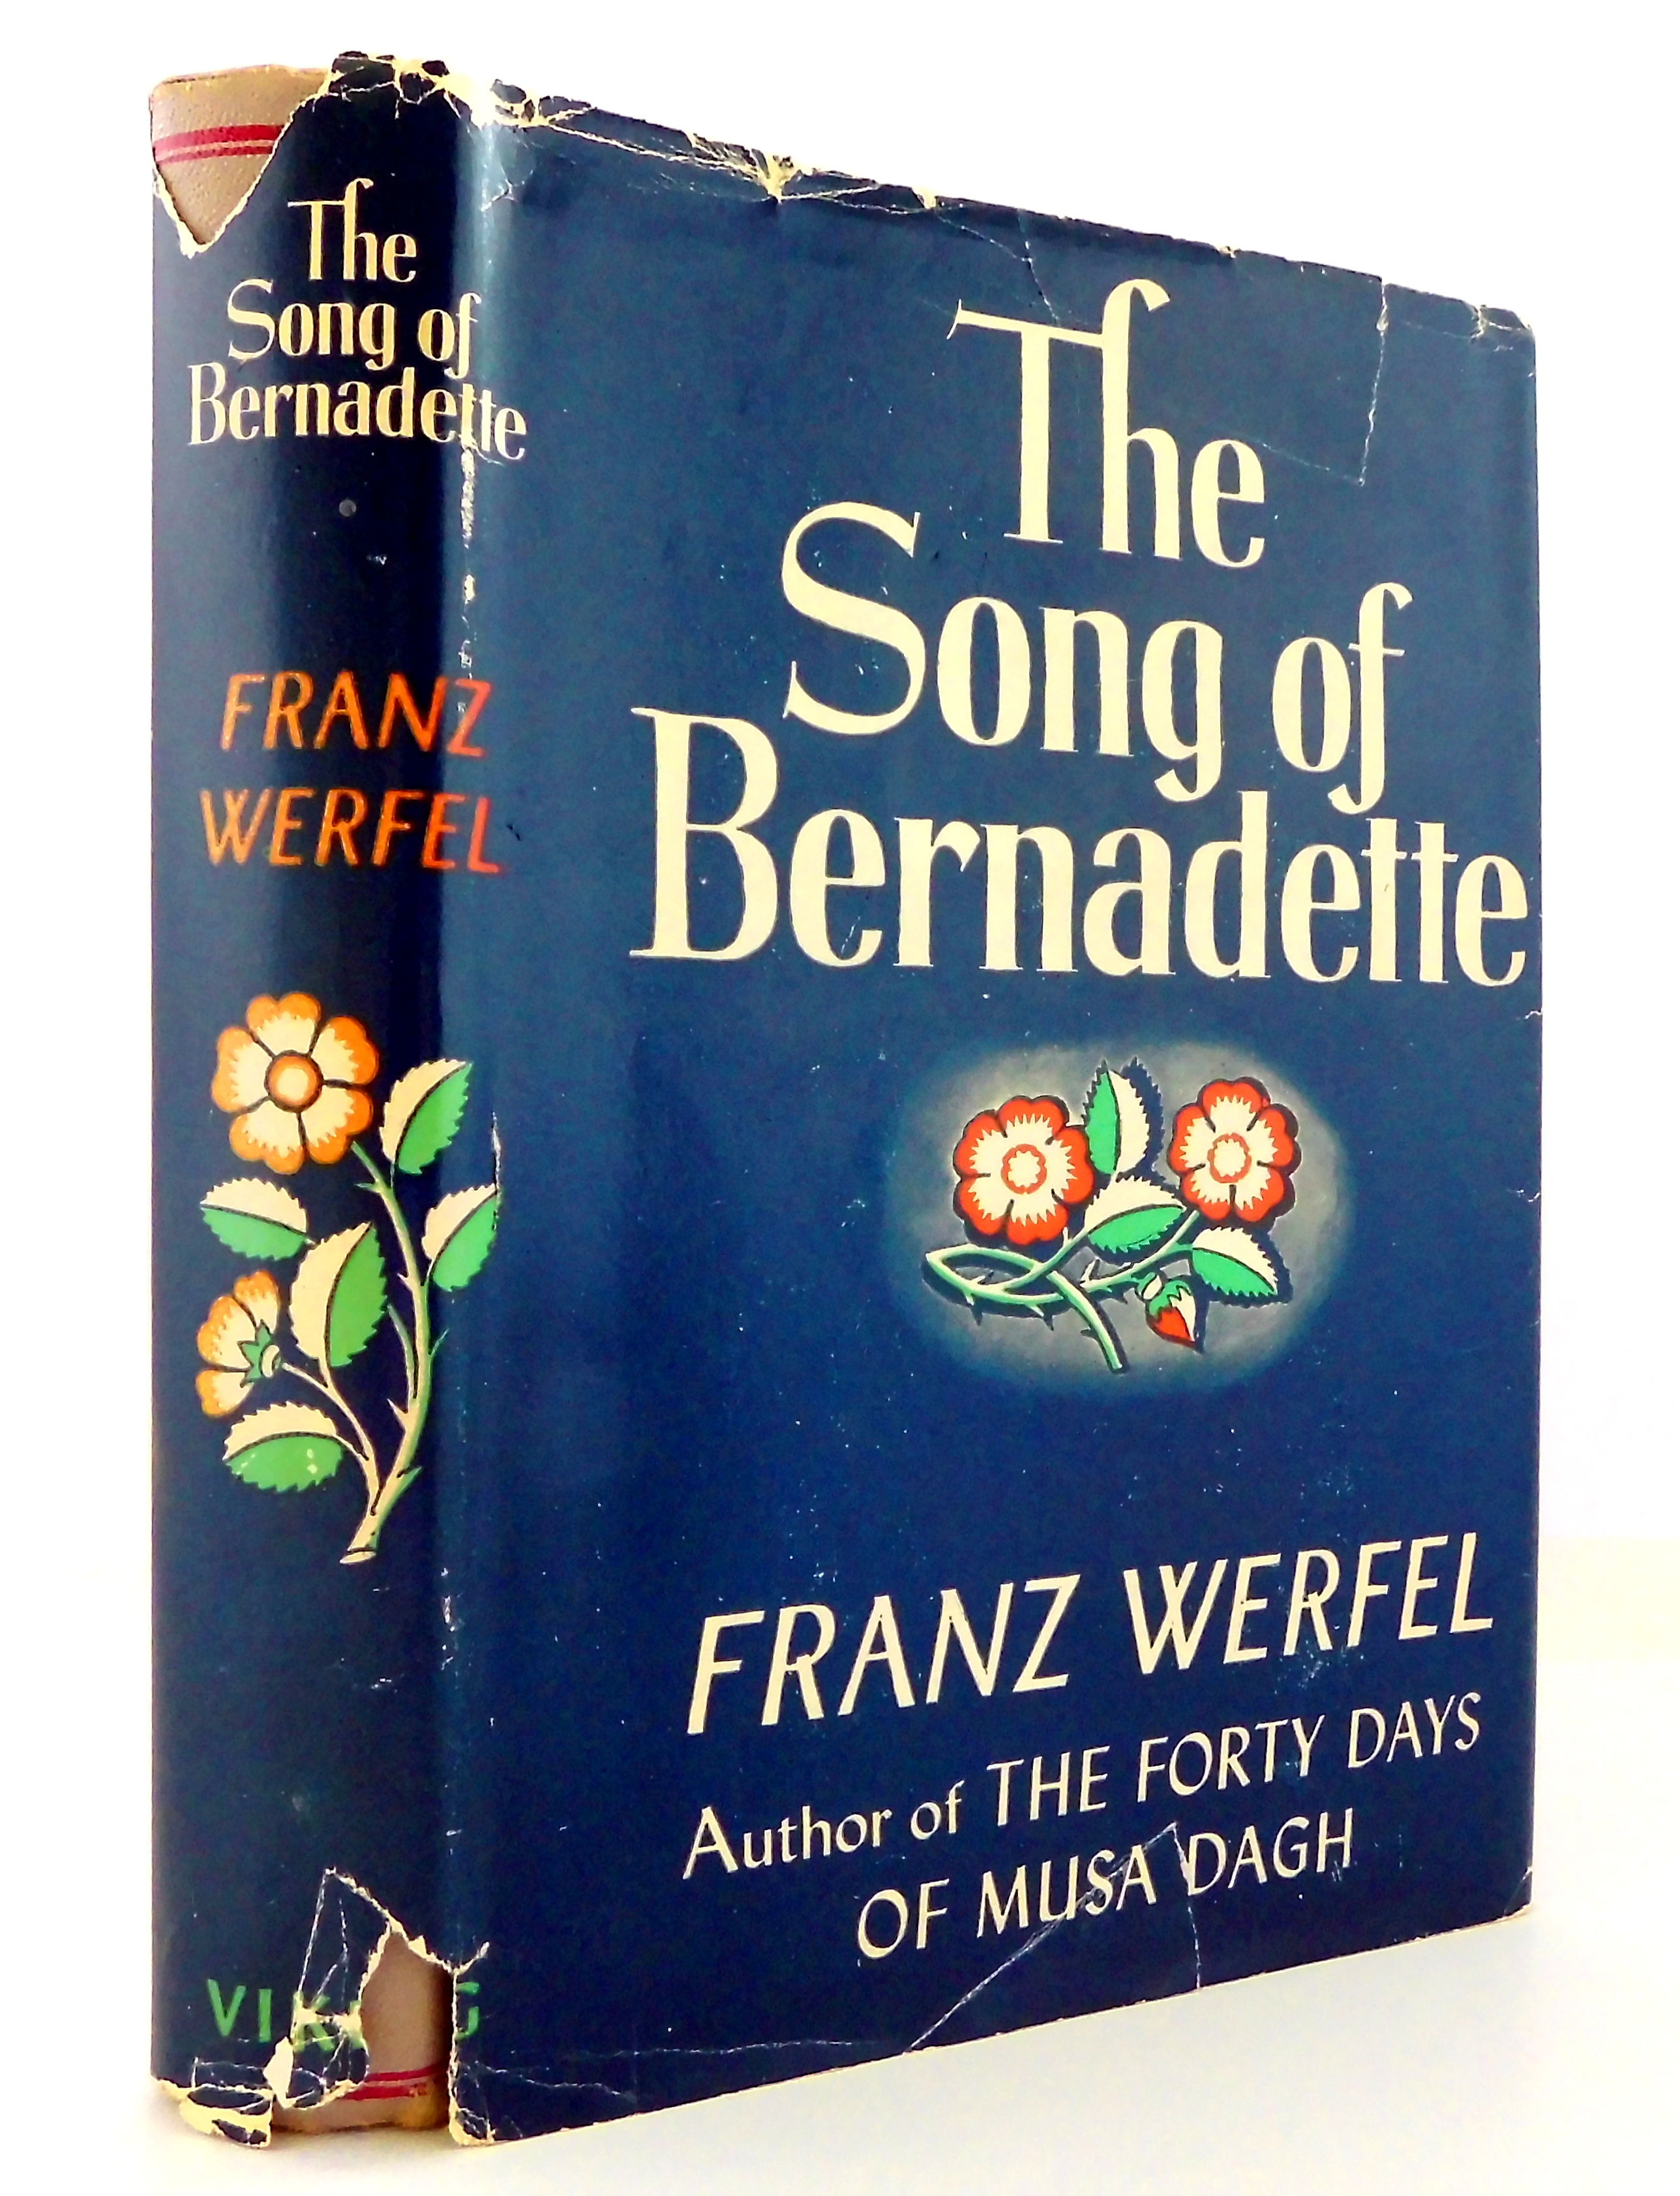 Image result for the song of bernadette book